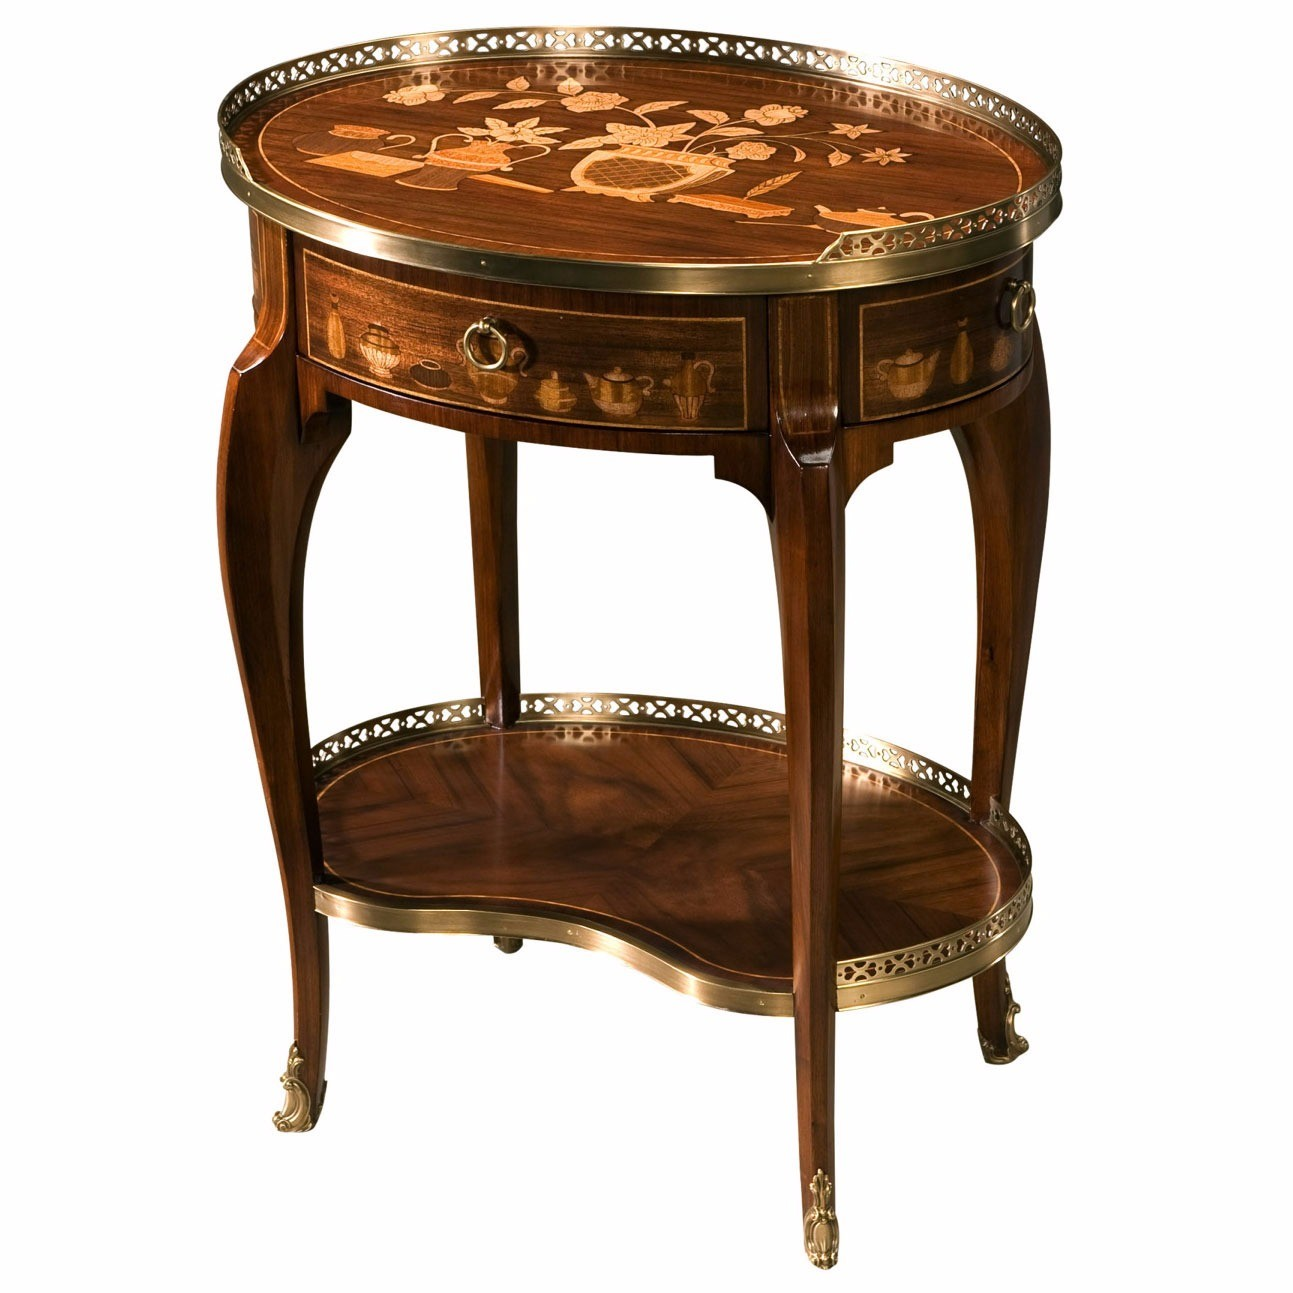 Mahogany dressing table, Lamp / Side tables from Brights